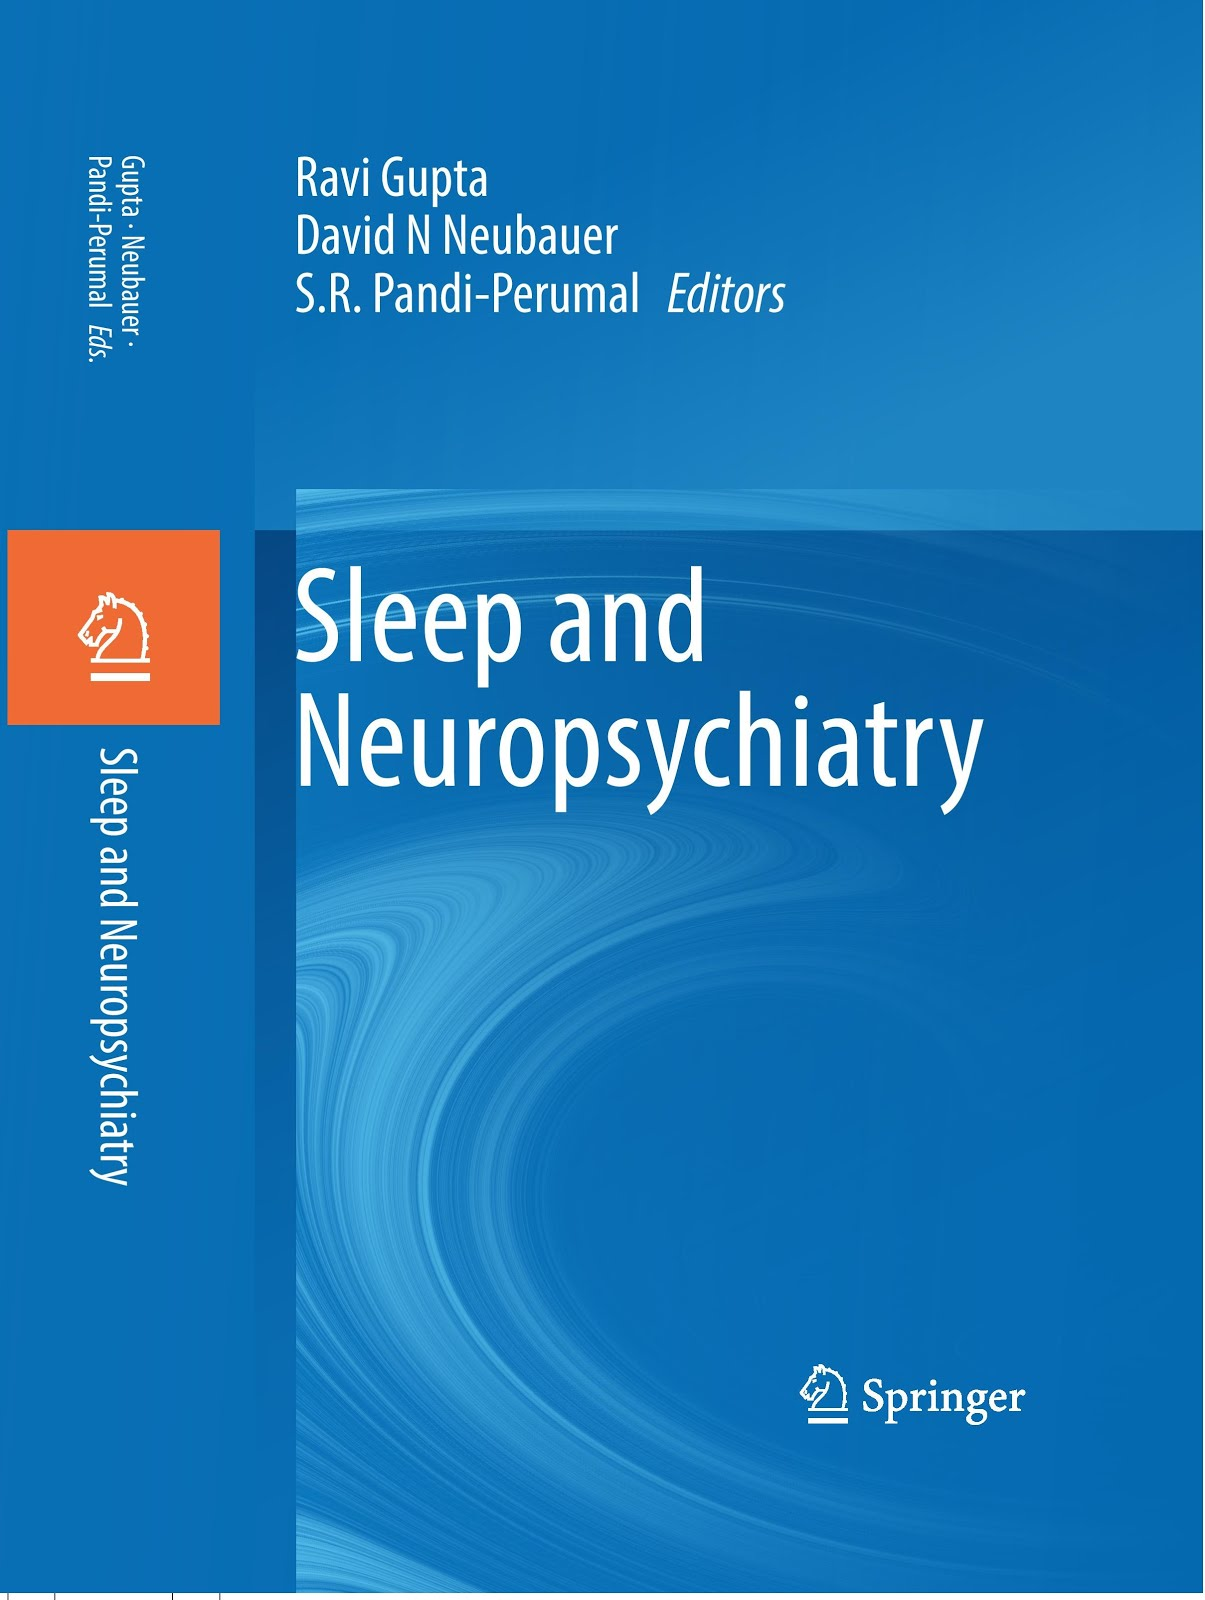 Sleep and Neuropsychiatry